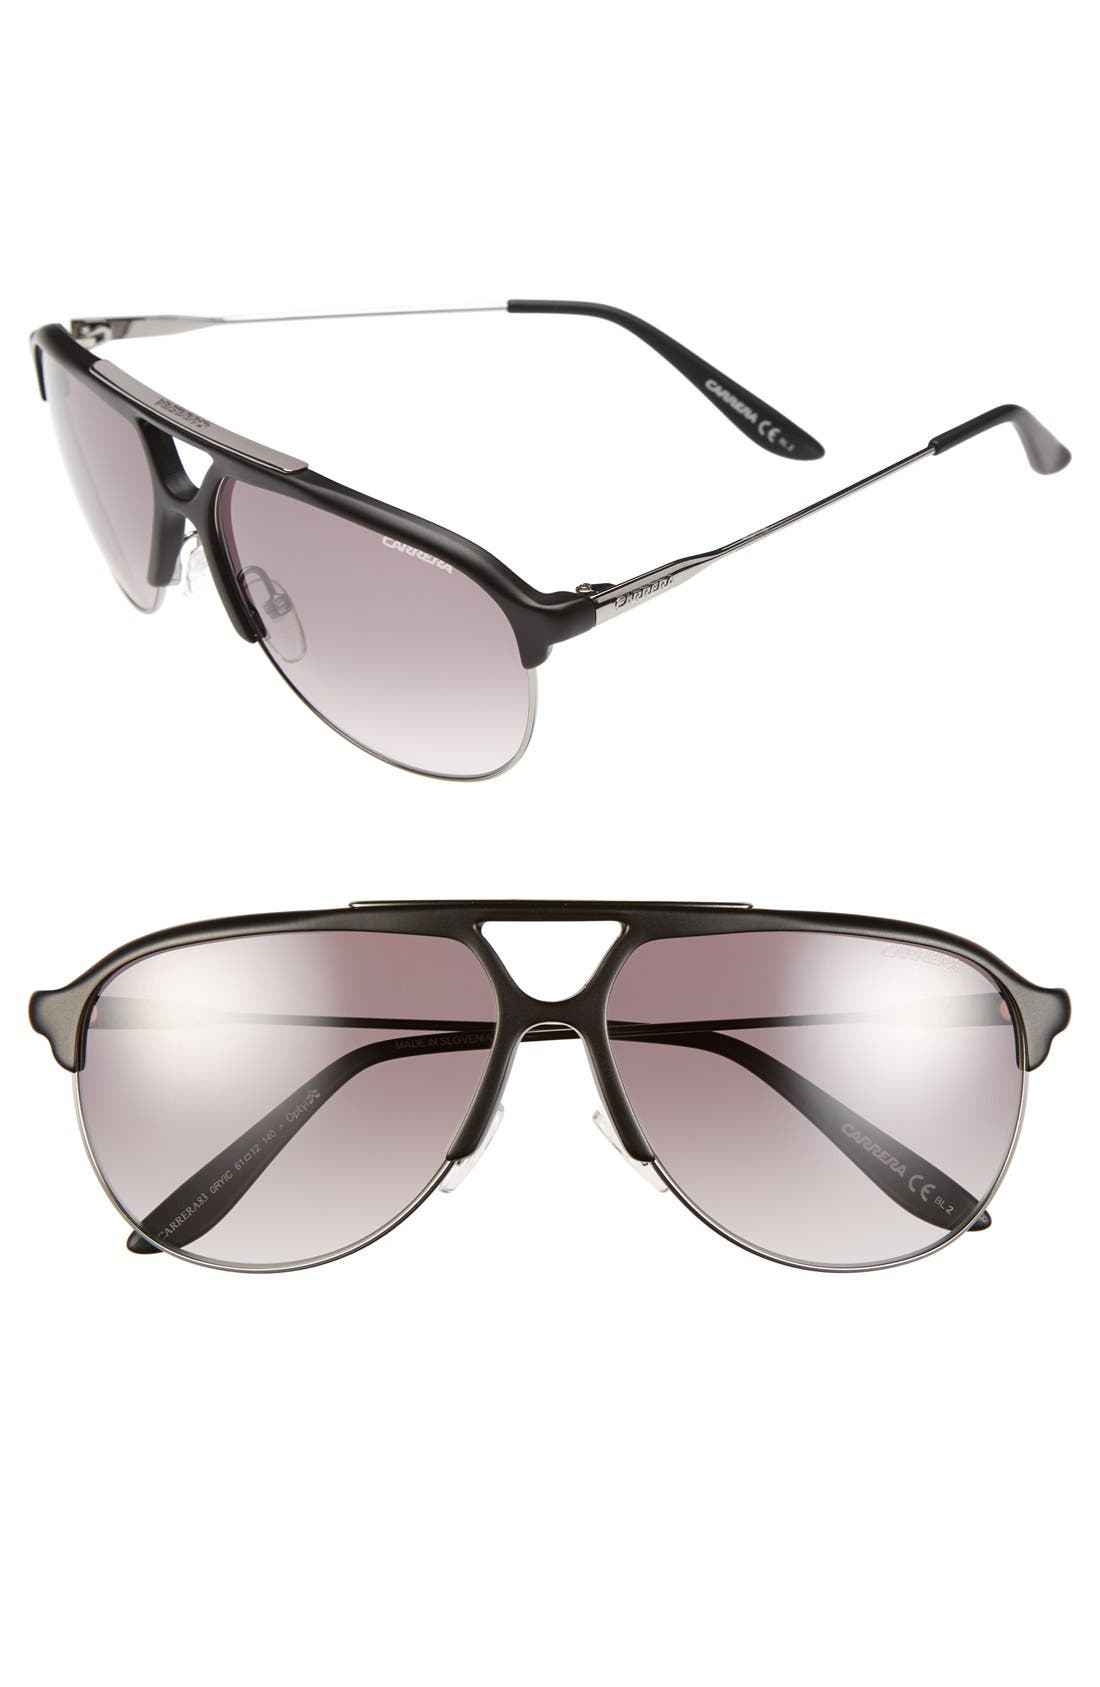 61mm Sunglasses,                         Main,                         color, Ruthenium